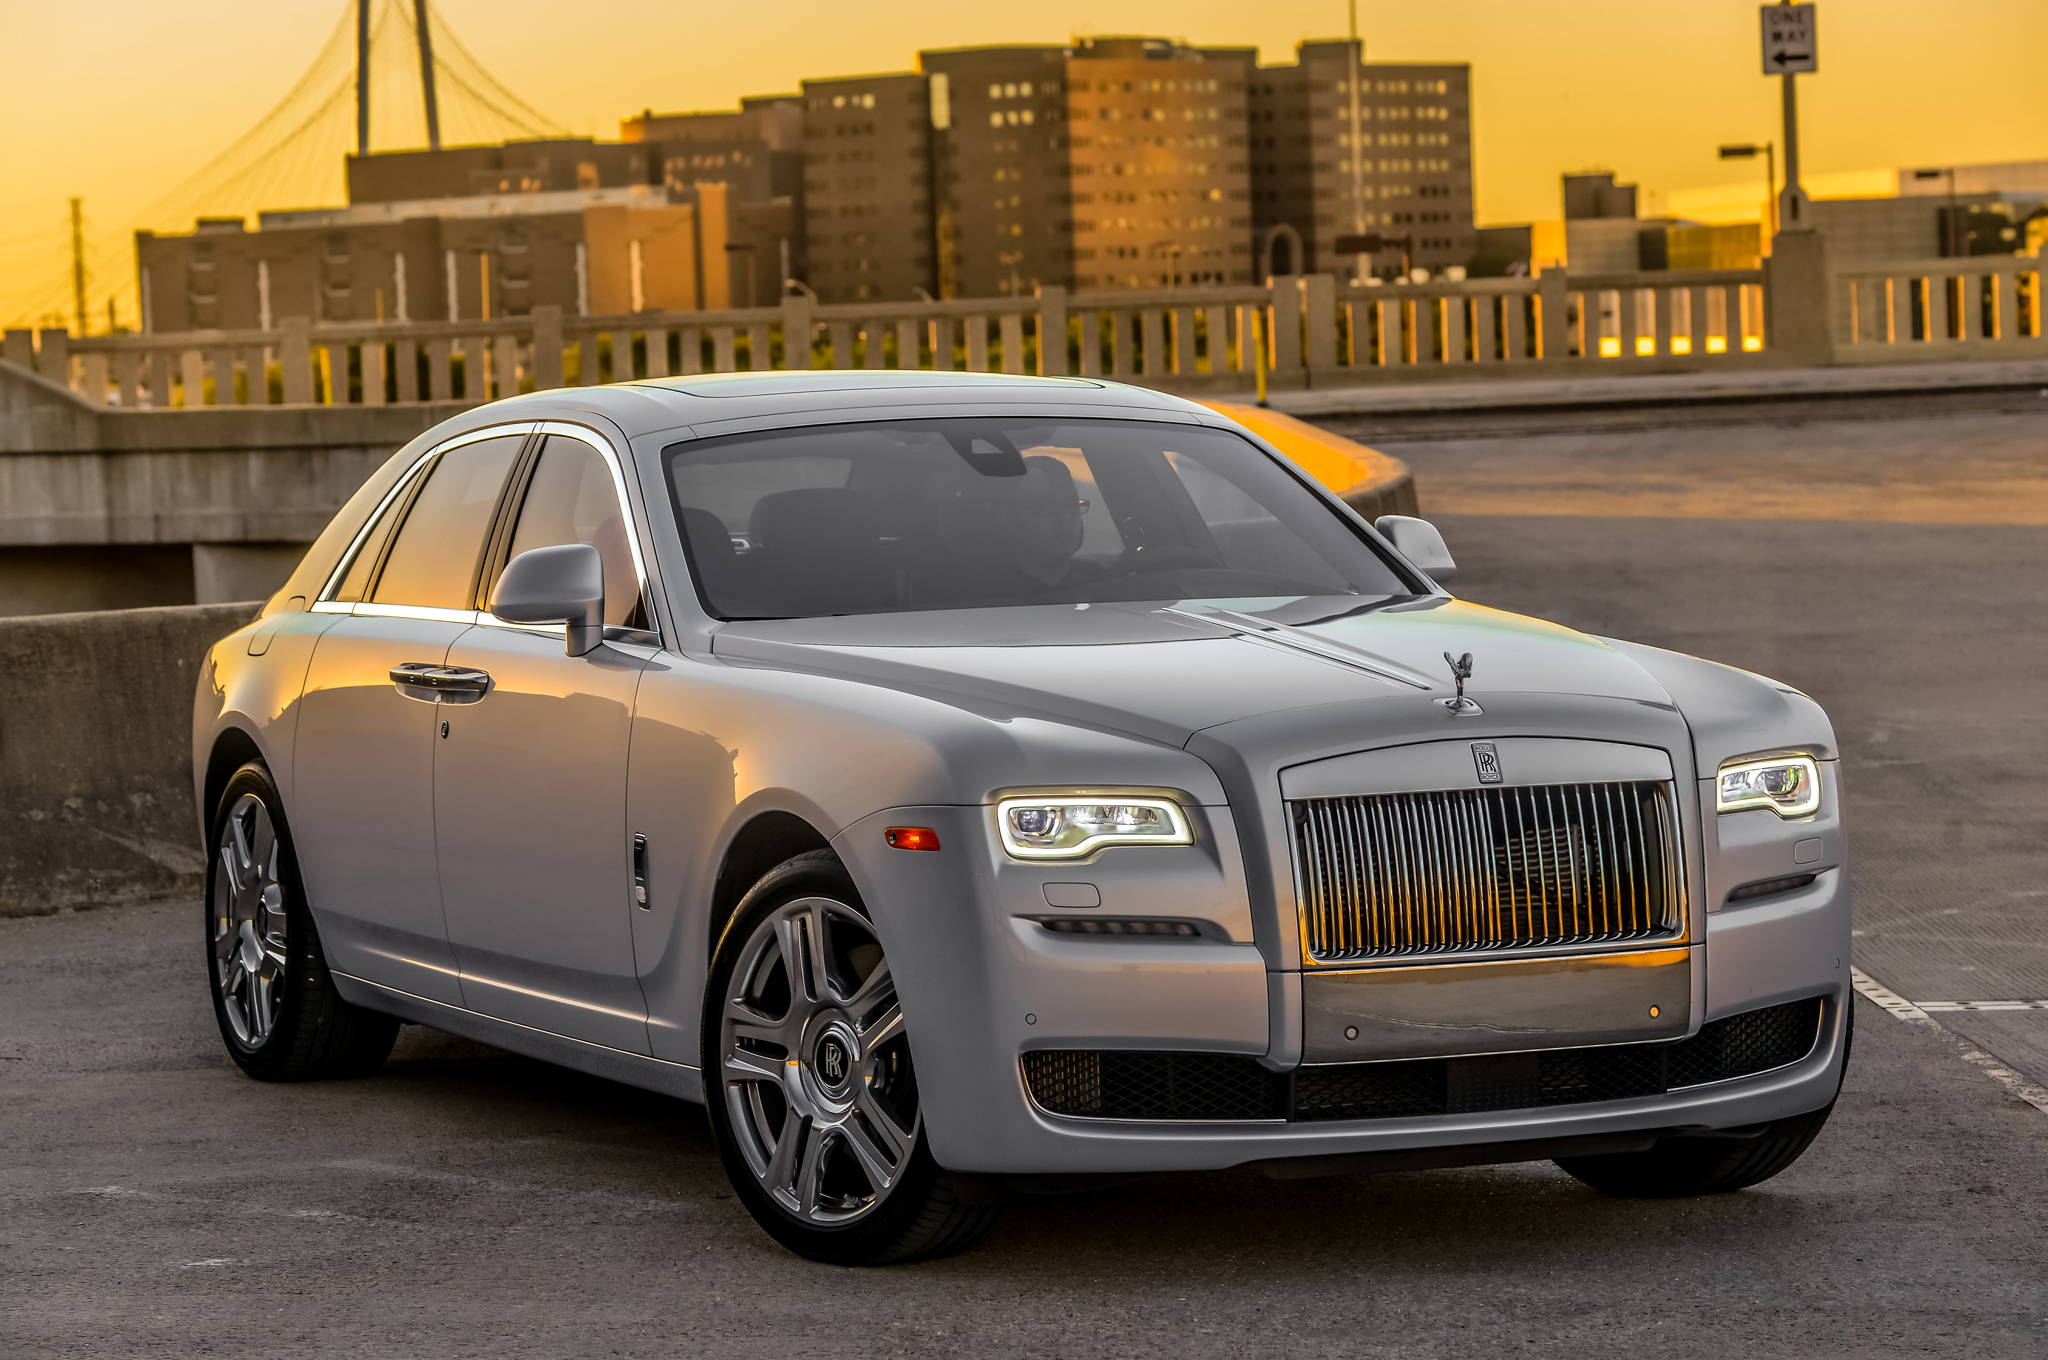 2015 Rolls royce Ghost Series Ii #16